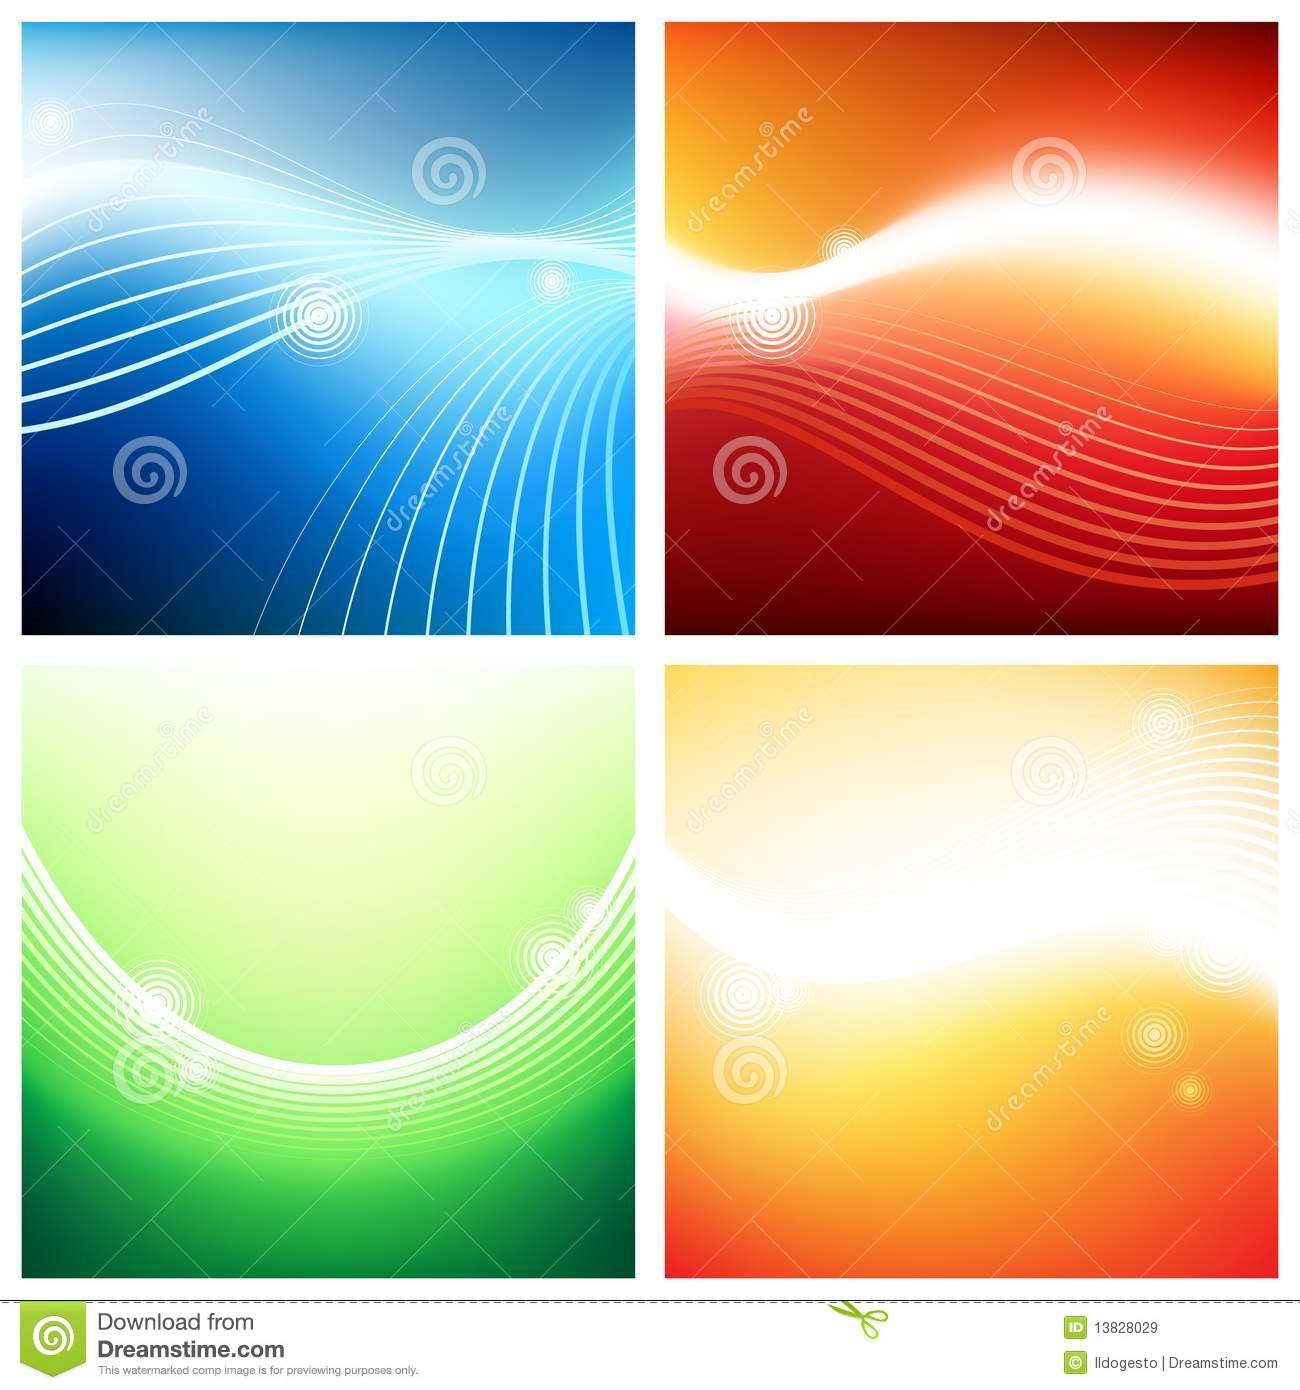 Vivid Backgrounds Streams Royalty Free Stock